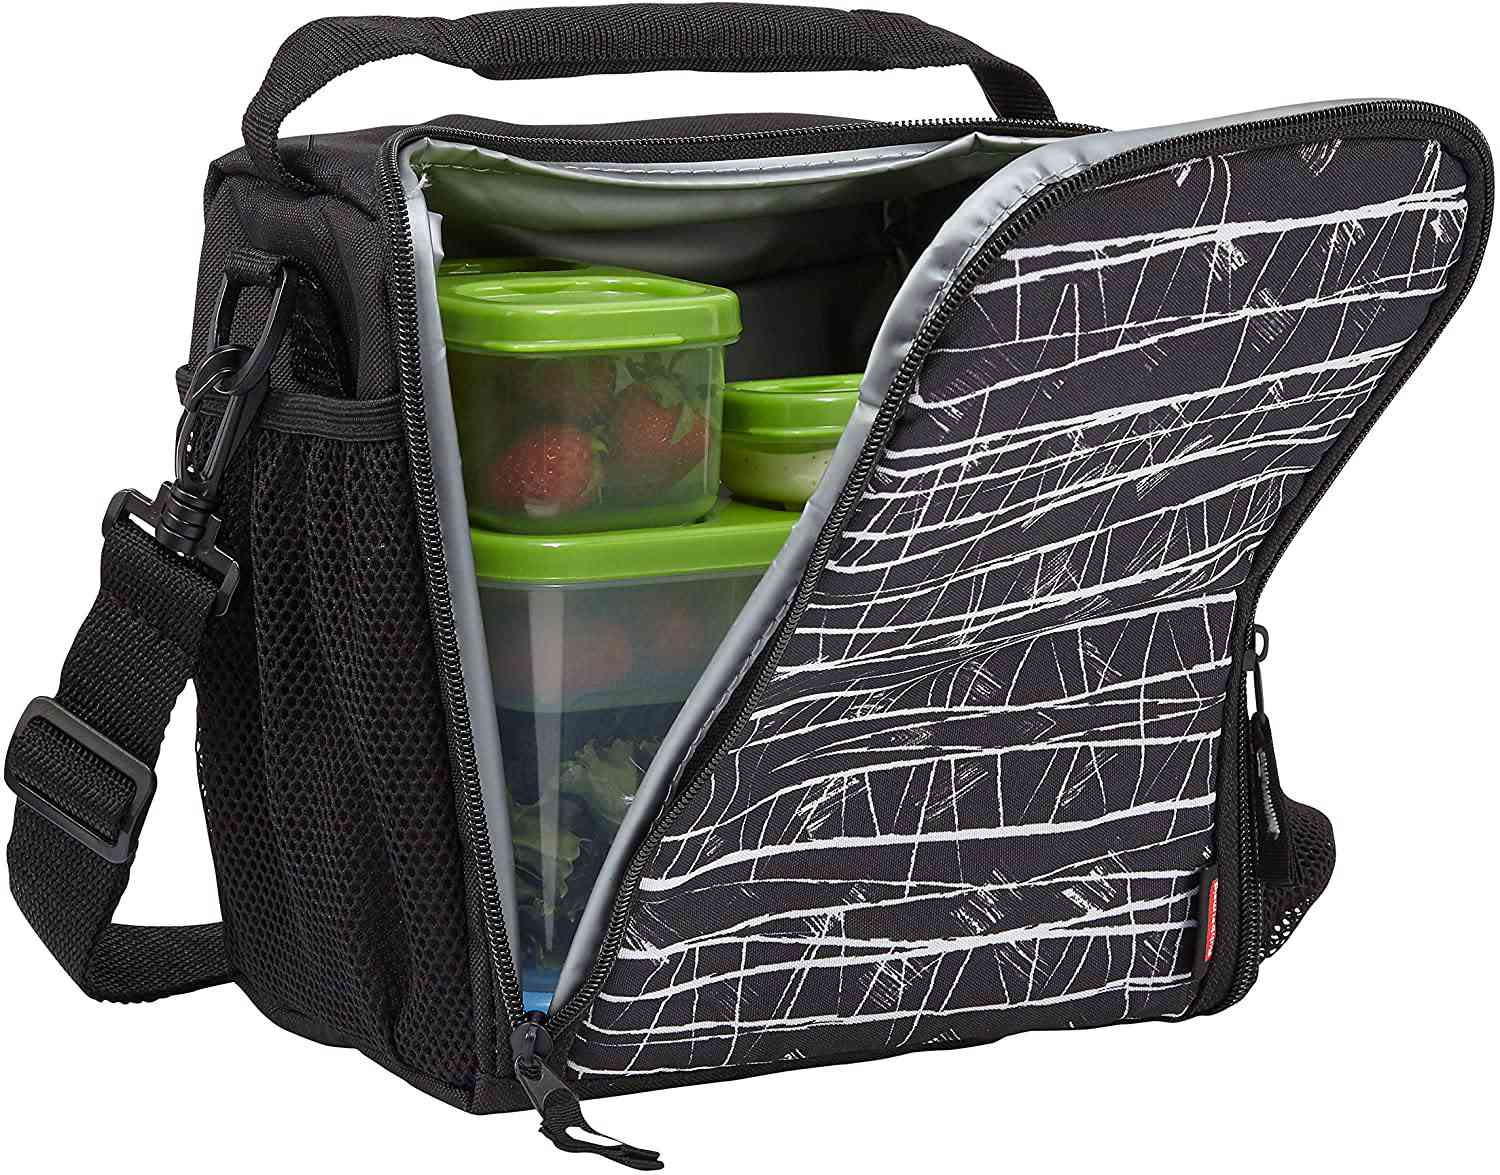 Rubbermaid LunchBlox Small Lunch Bag